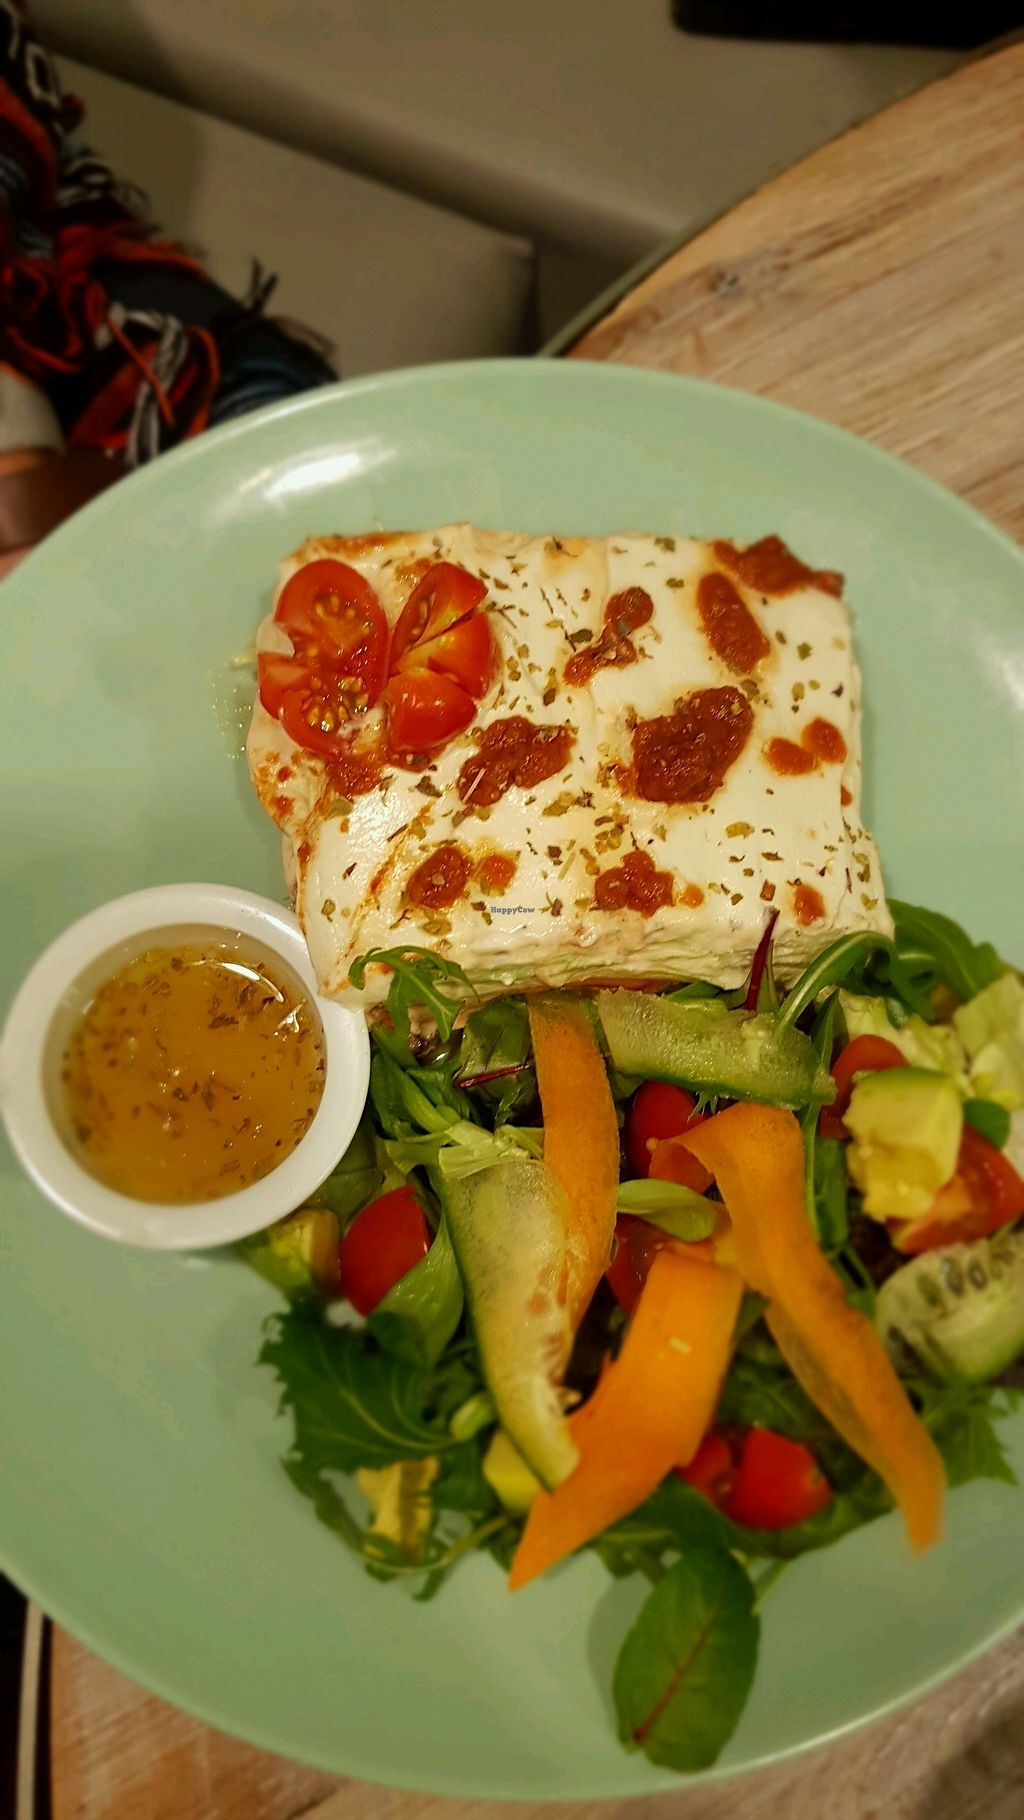 """Photo of Paradise Unbakery  by <a href=""""/members/profile/CarlocoIsVegan"""">CarlocoIsVegan</a> <br/>Raw lasagne (my fave) <br/> January 11, 2018  - <a href='/contact/abuse/image/78199/345486'>Report</a>"""